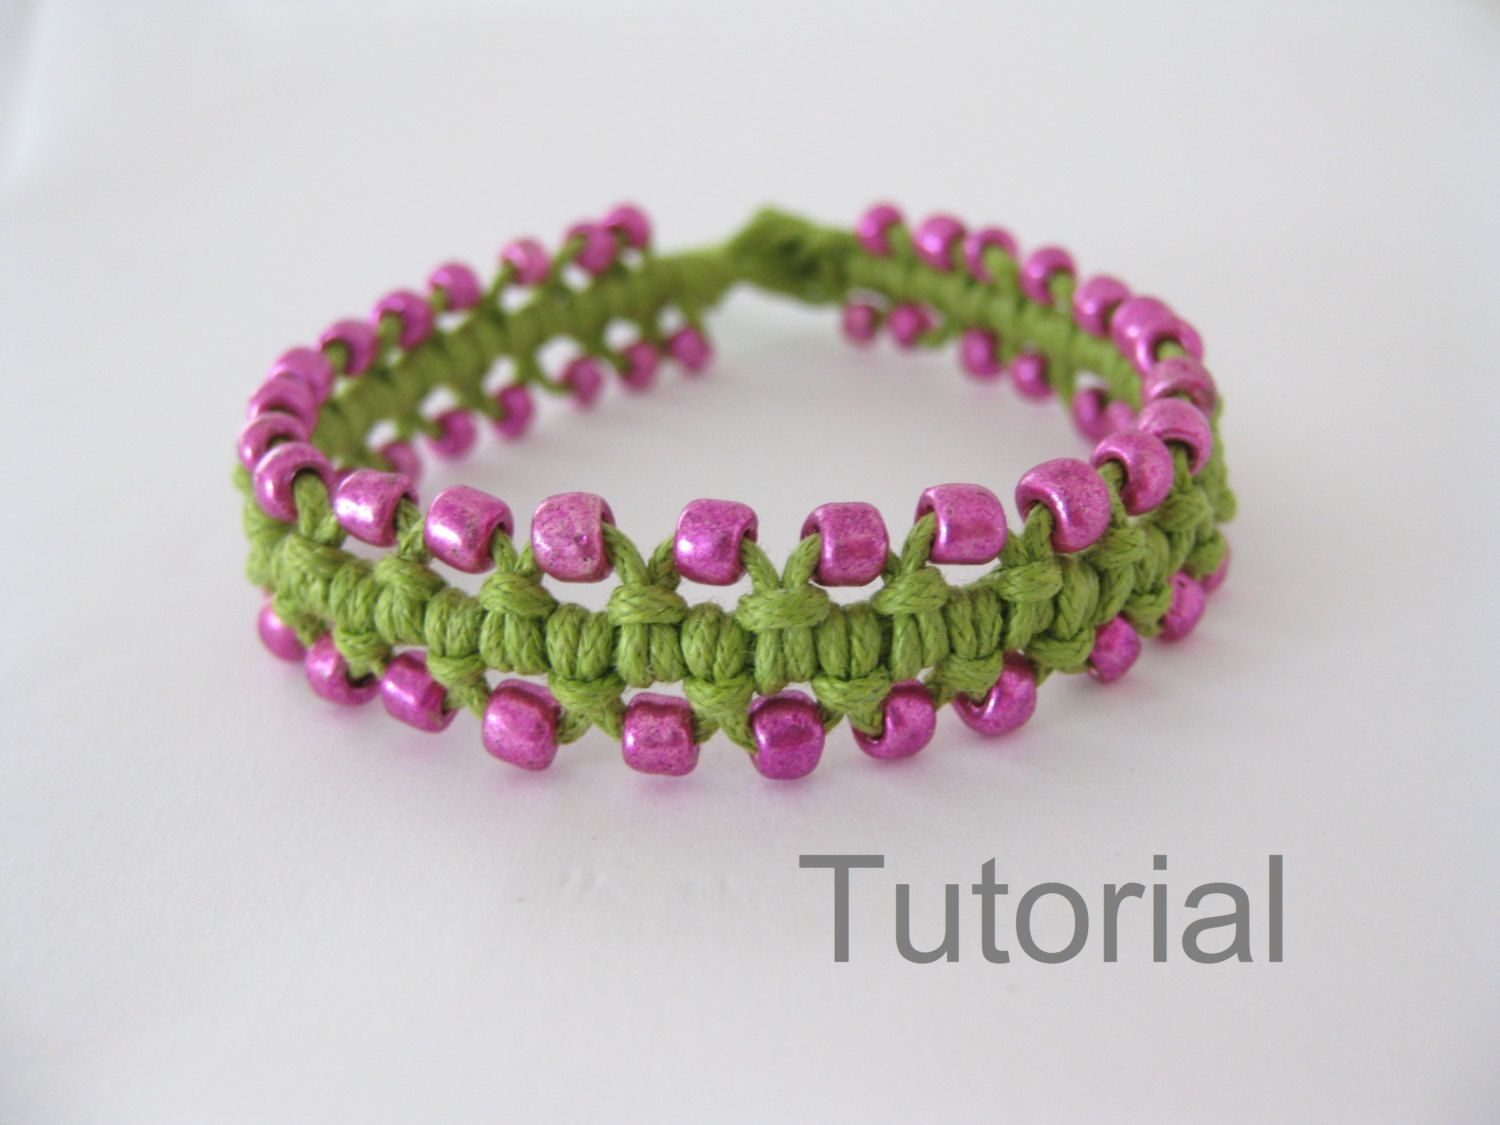 pattern beginner pin diy knot instructions bracelet by jewelry step knotted to jewellery pdf how macrame purple tutorial lacy handmade